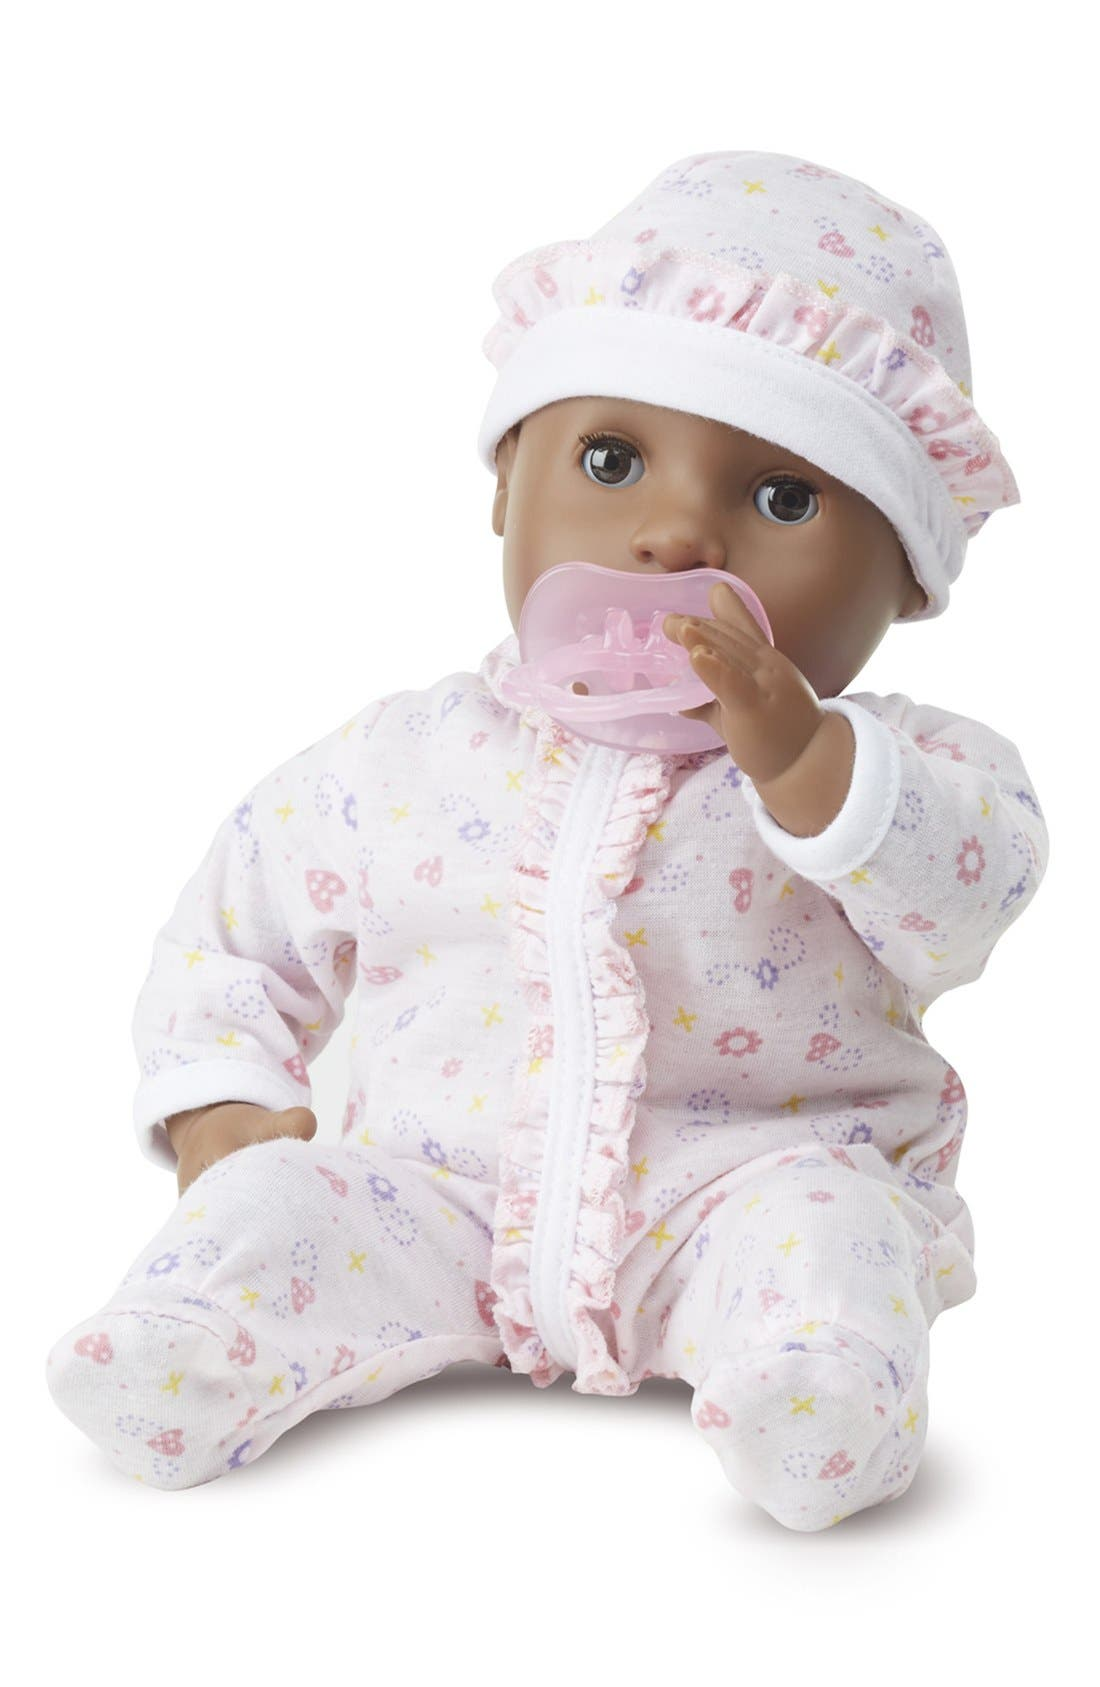 Melissa & Doug 'Mine to Love - Gabrielle' Baby Doll